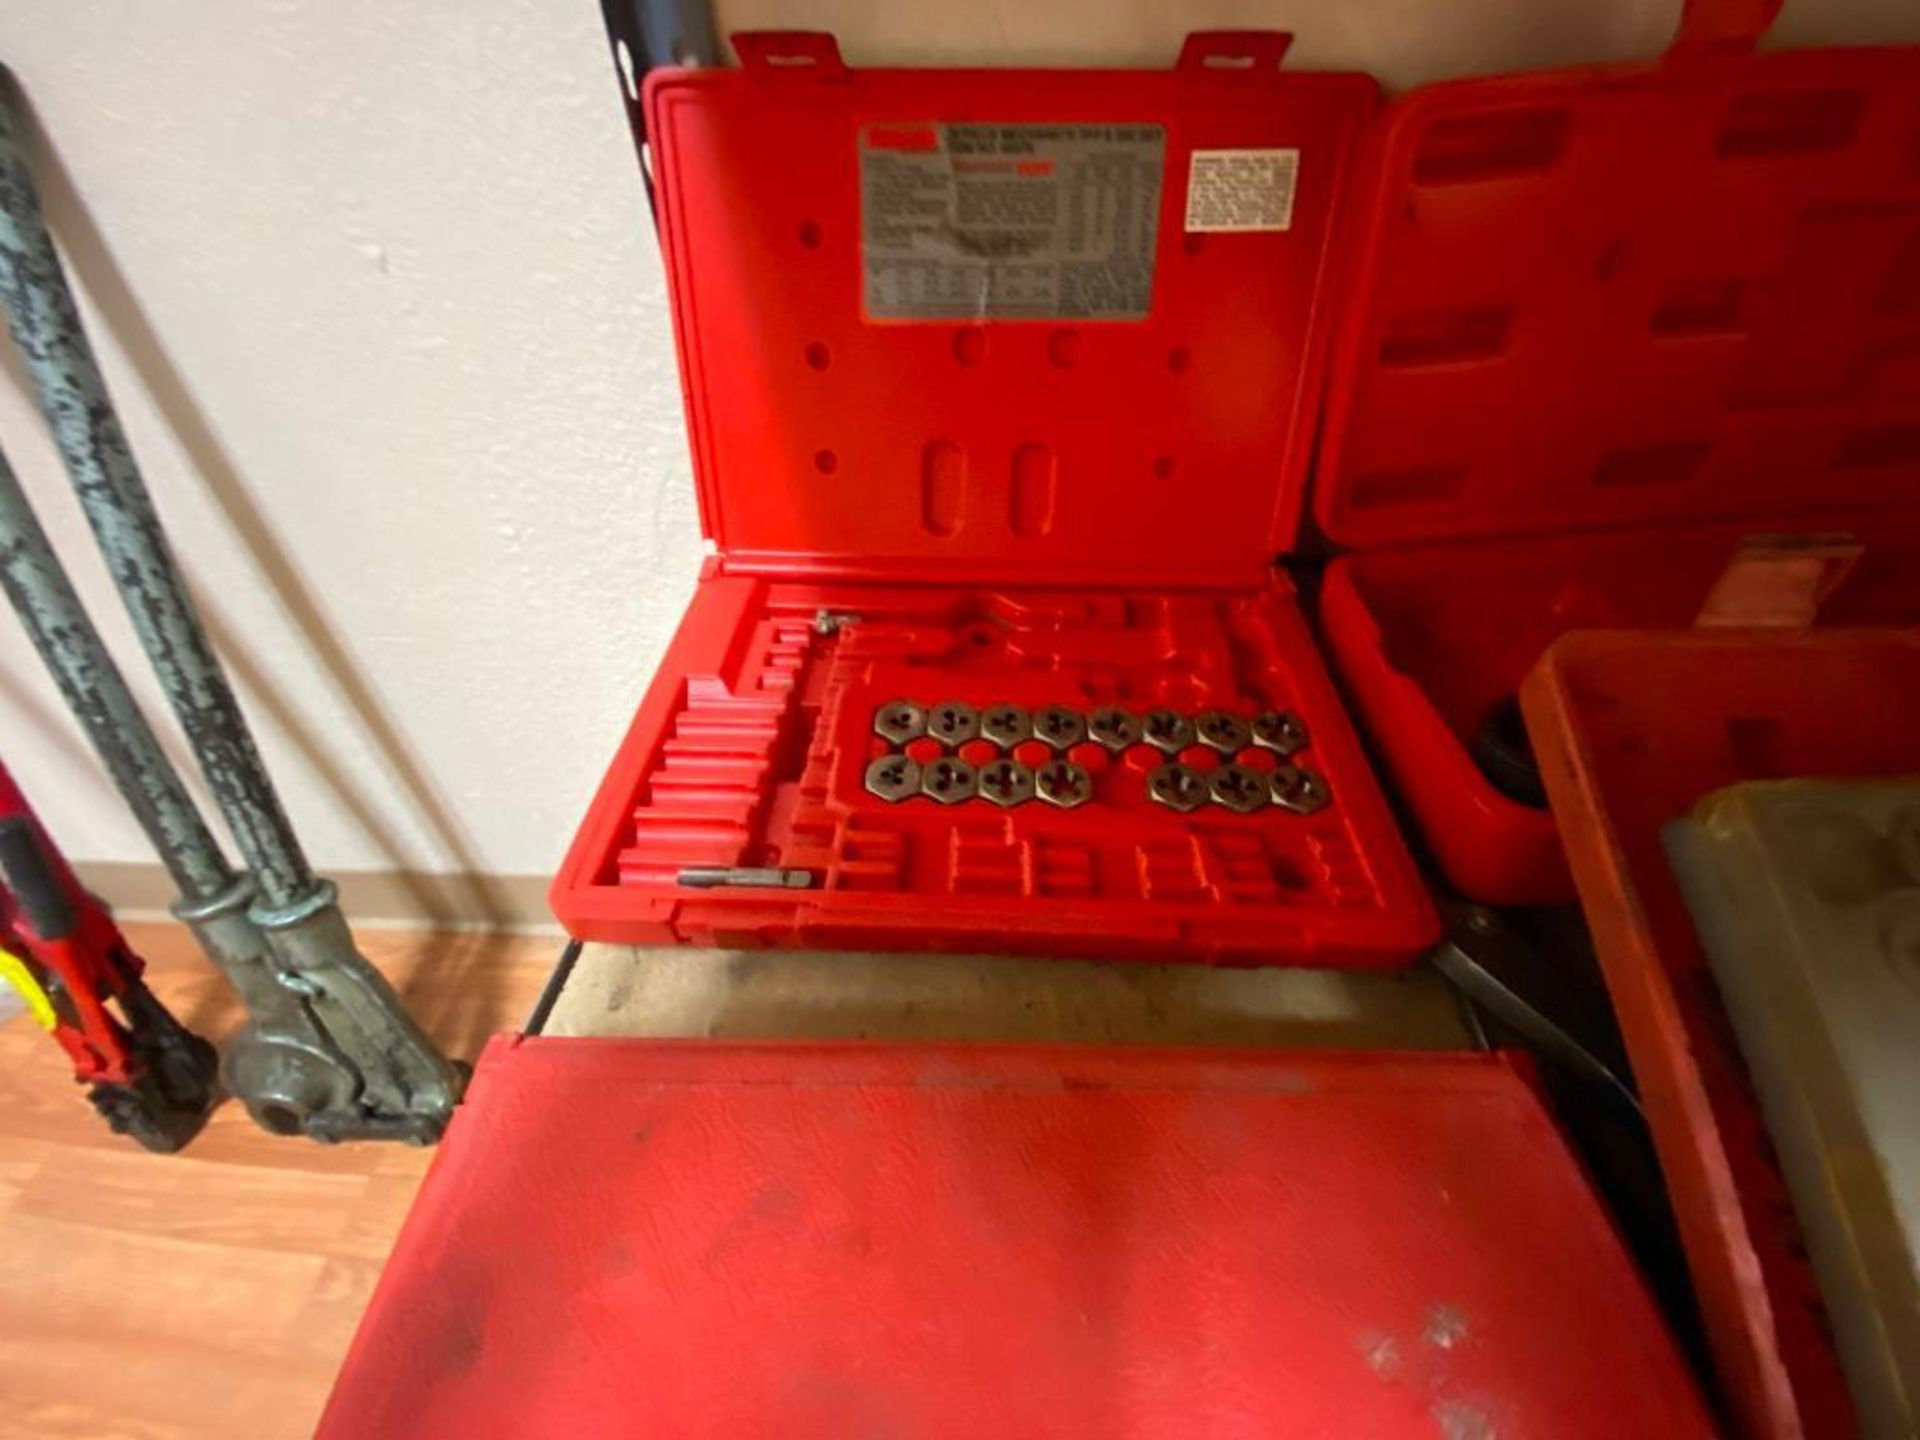 various tools includes bits, large wrenches, lockout tagout kit, grinder - Image 14 of 18